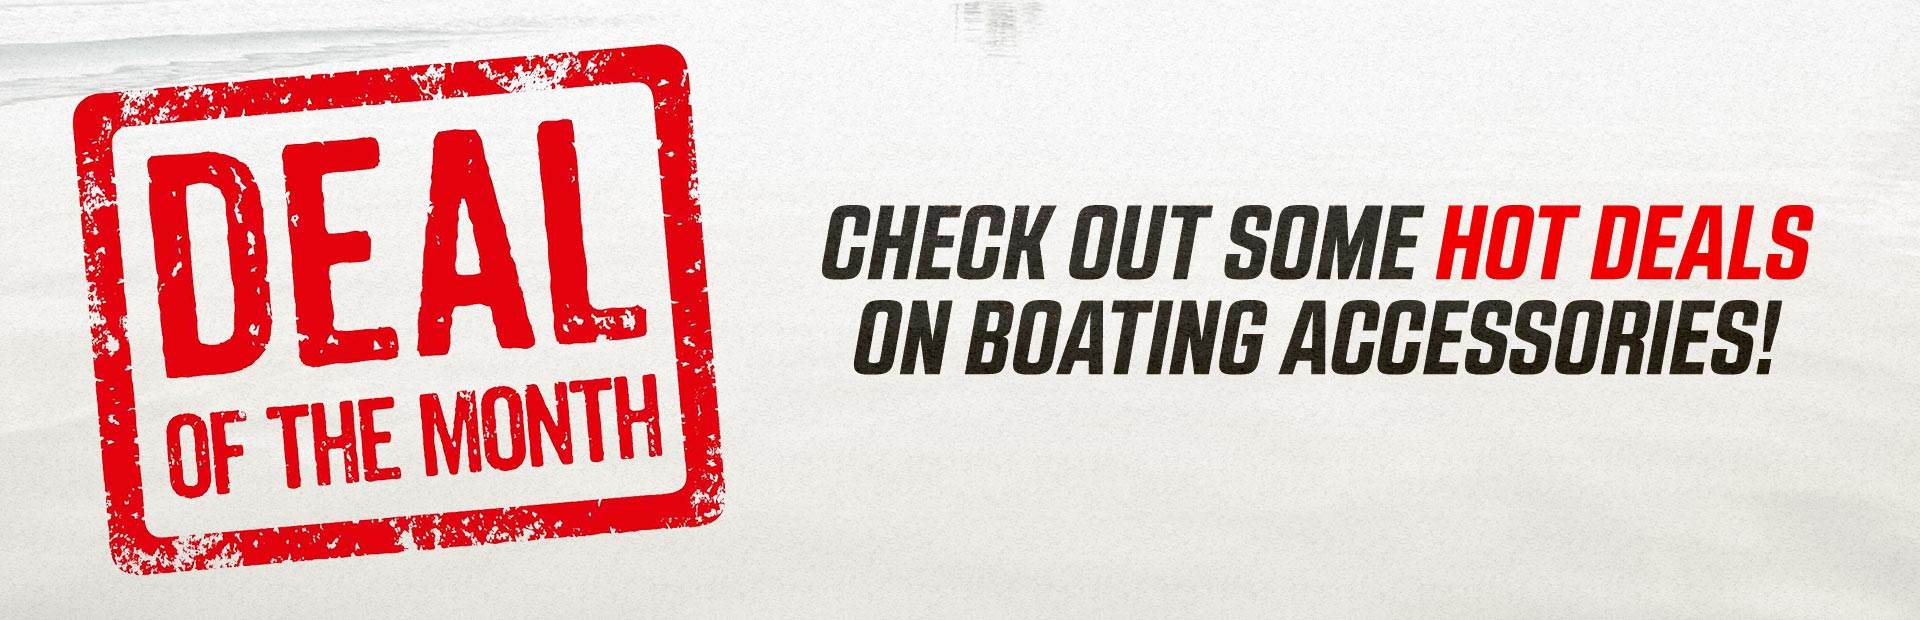 Deal of the Month: Check out some hot deals on boating accessories!